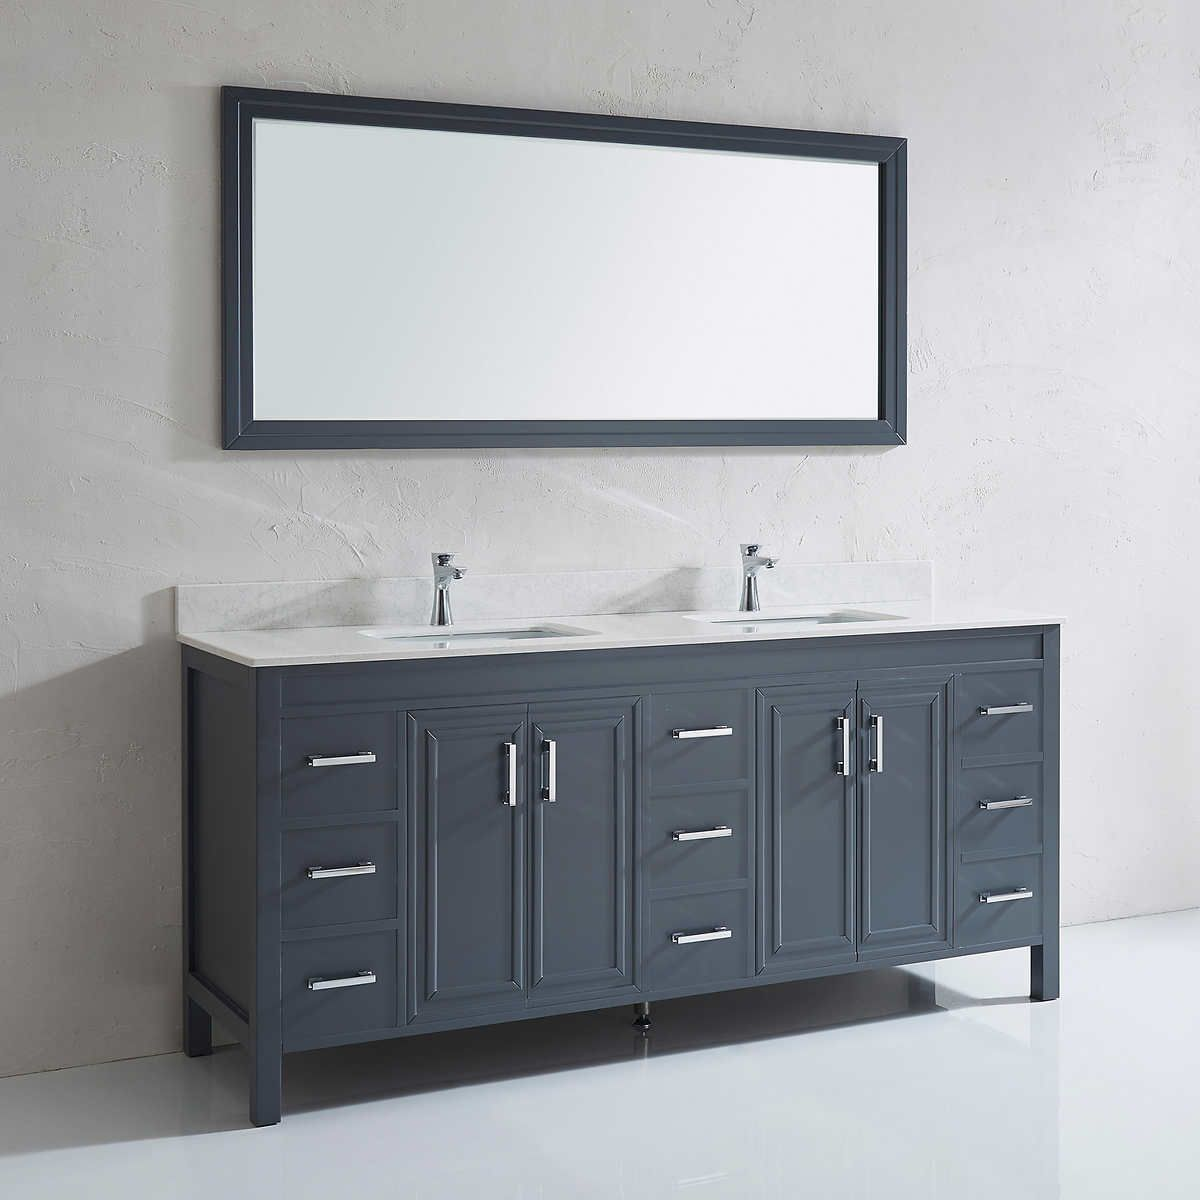 furniture lowes bath elegant depot floating and with design menards sin sink ideas bathroom for vanity inch of beautiful white costco home vanities sinks double tops